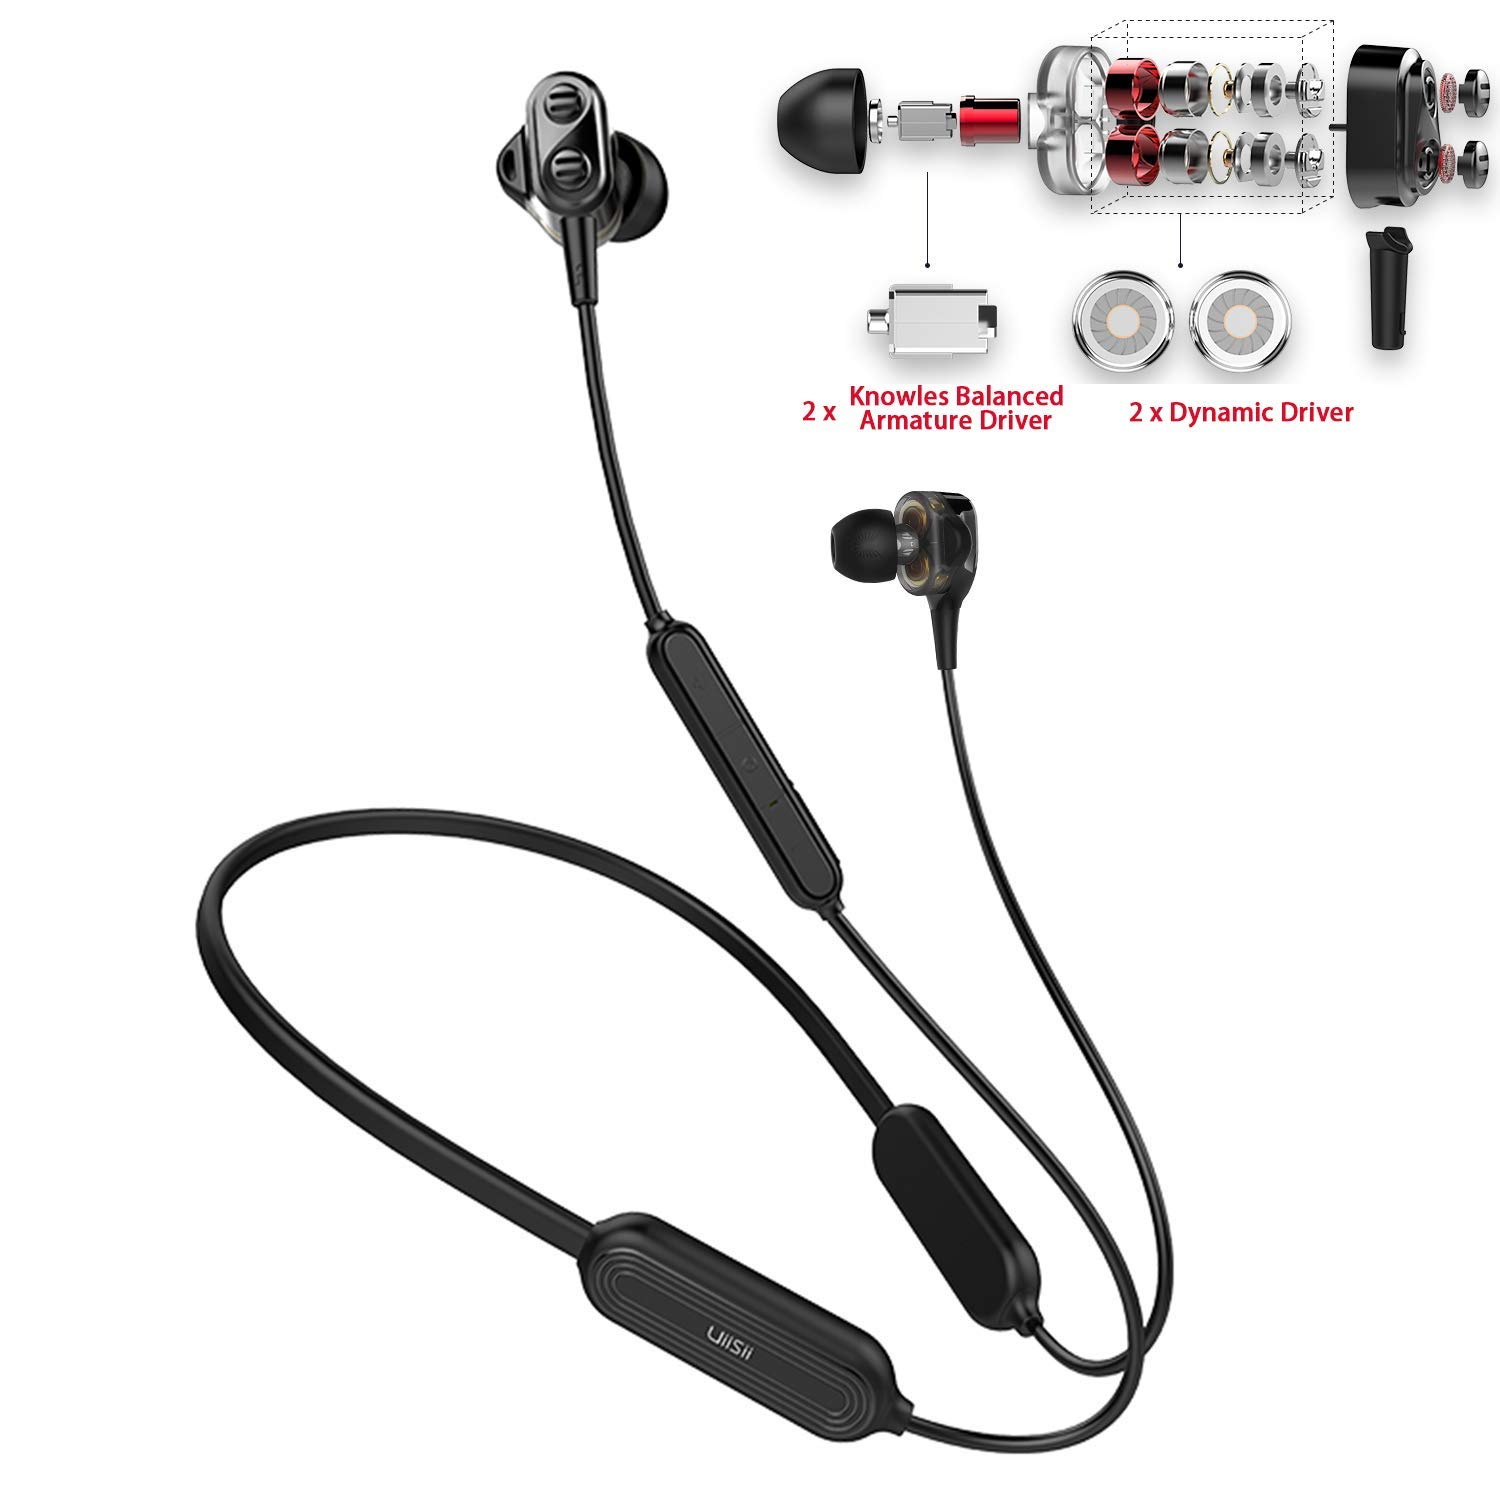 TOP Sweatproof Impressive Cancelling Headphones